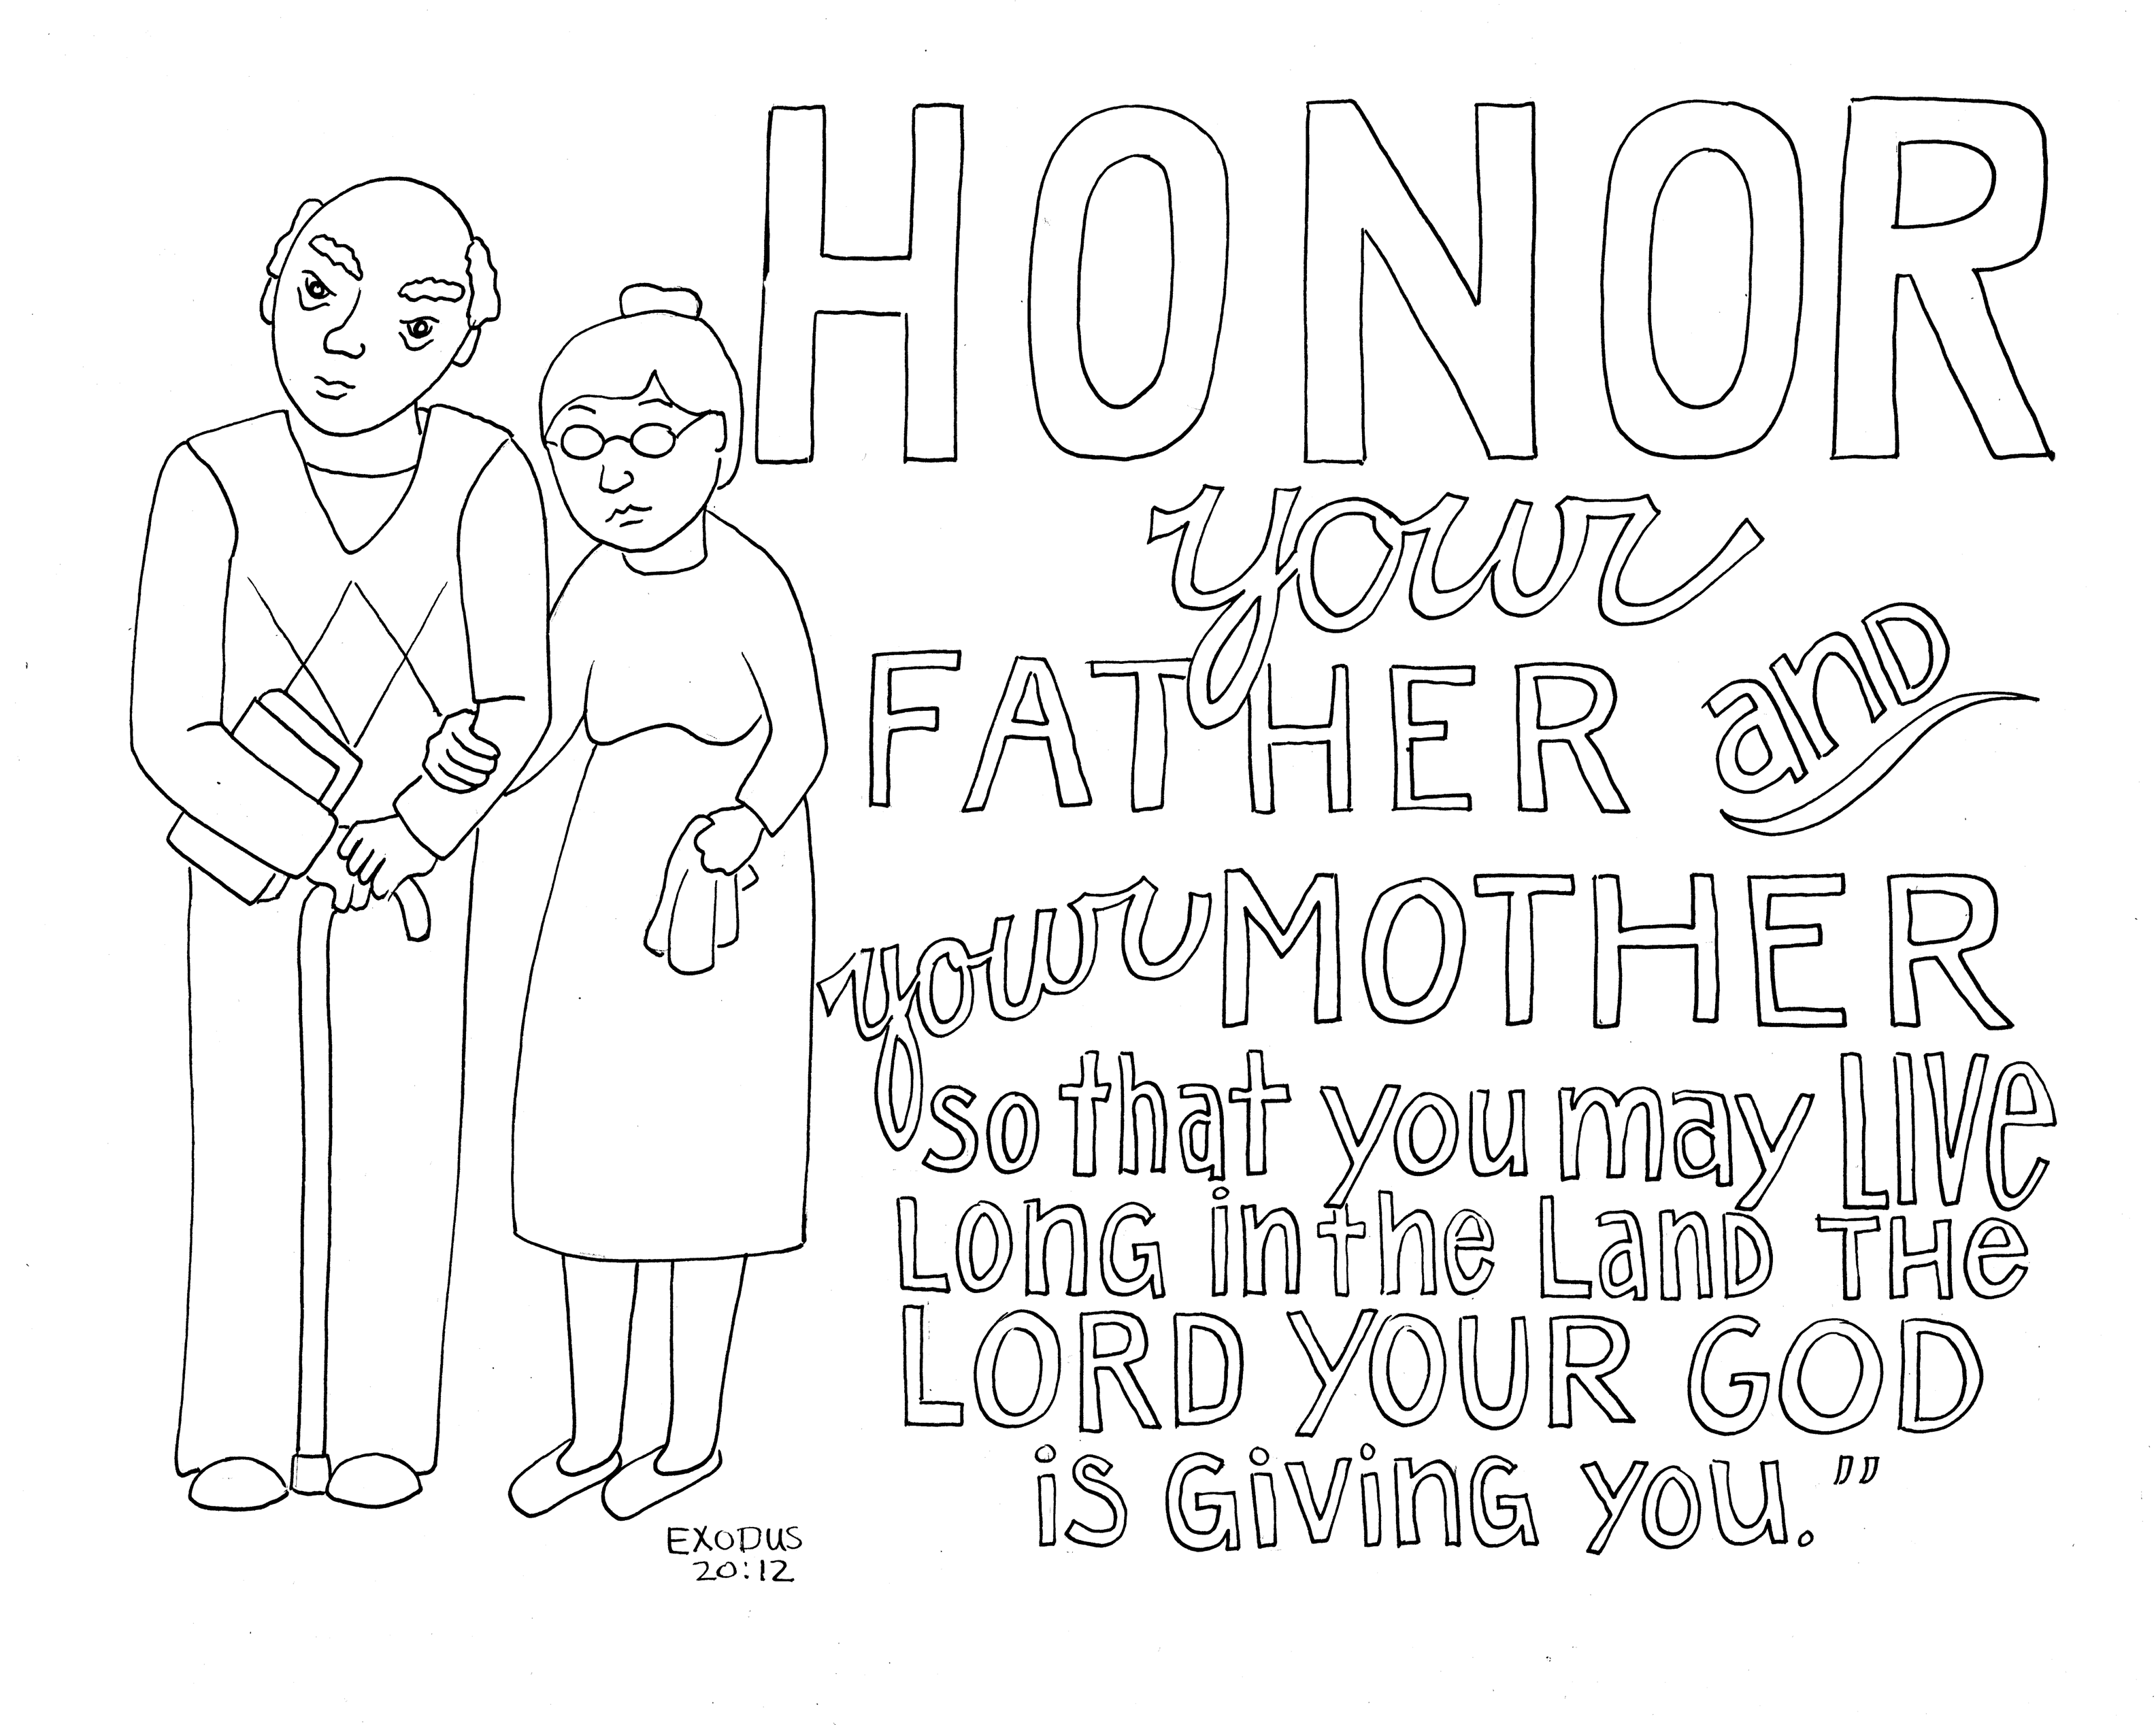 honor your father and mother coloring page honor your father and mother coloring page coloring pages